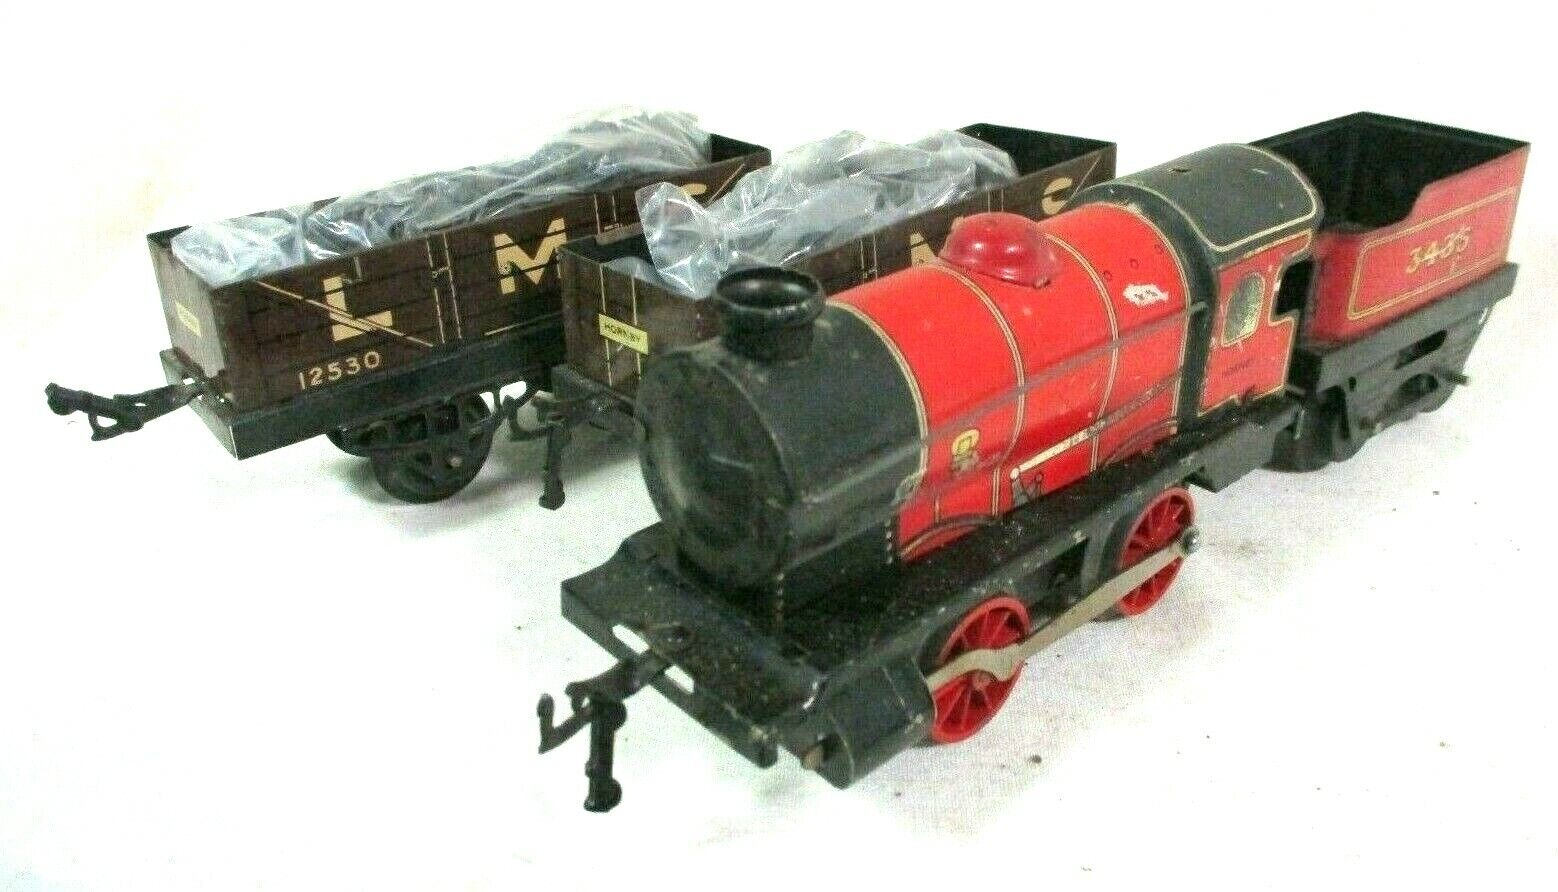 Hornby Red Locomotive, 3435 Tender, 2 12530 LMS Wagons from M1 Goods Set B62-36